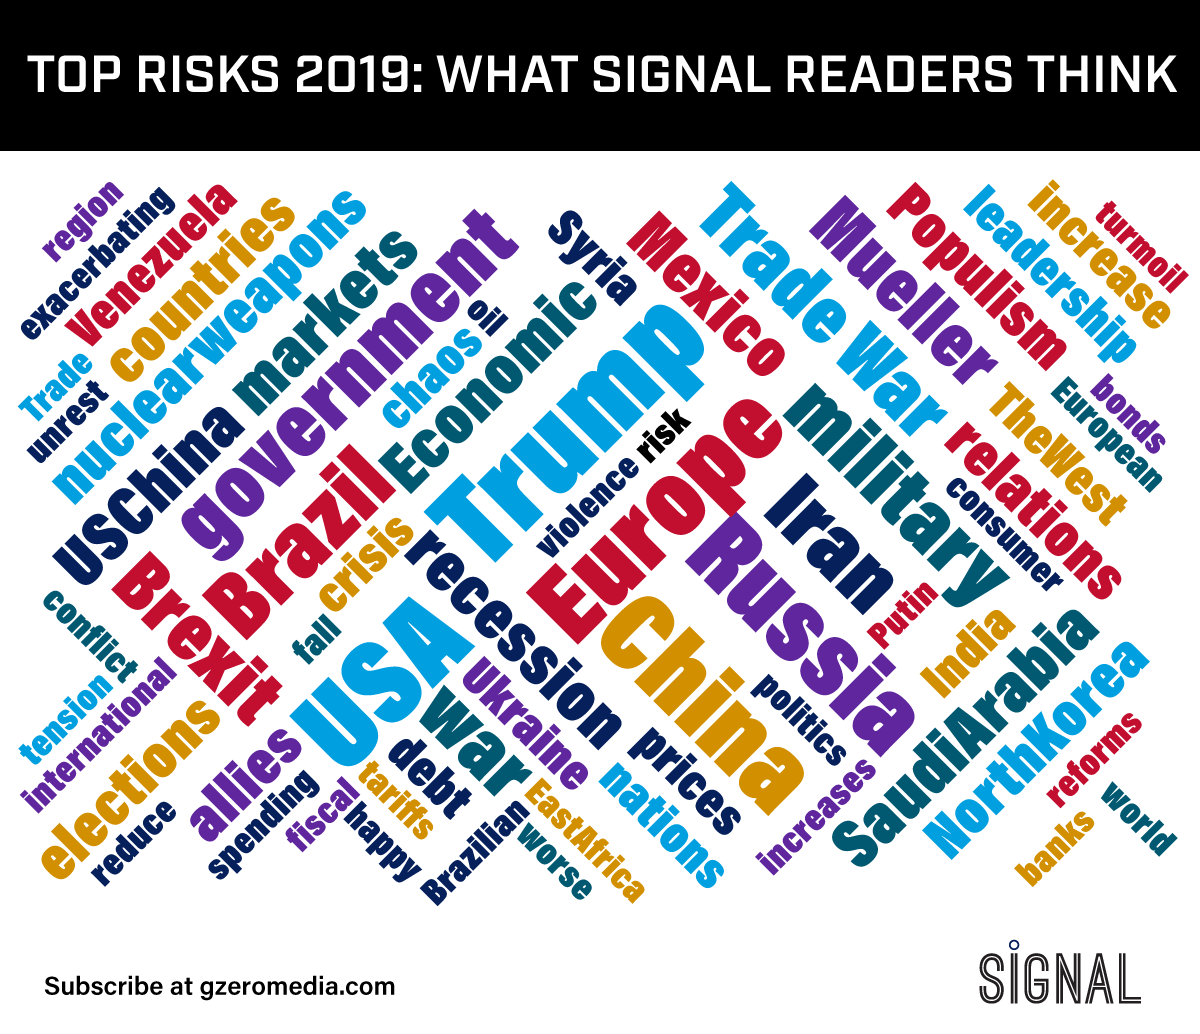 Graphic Truth: Readers' Top Risks